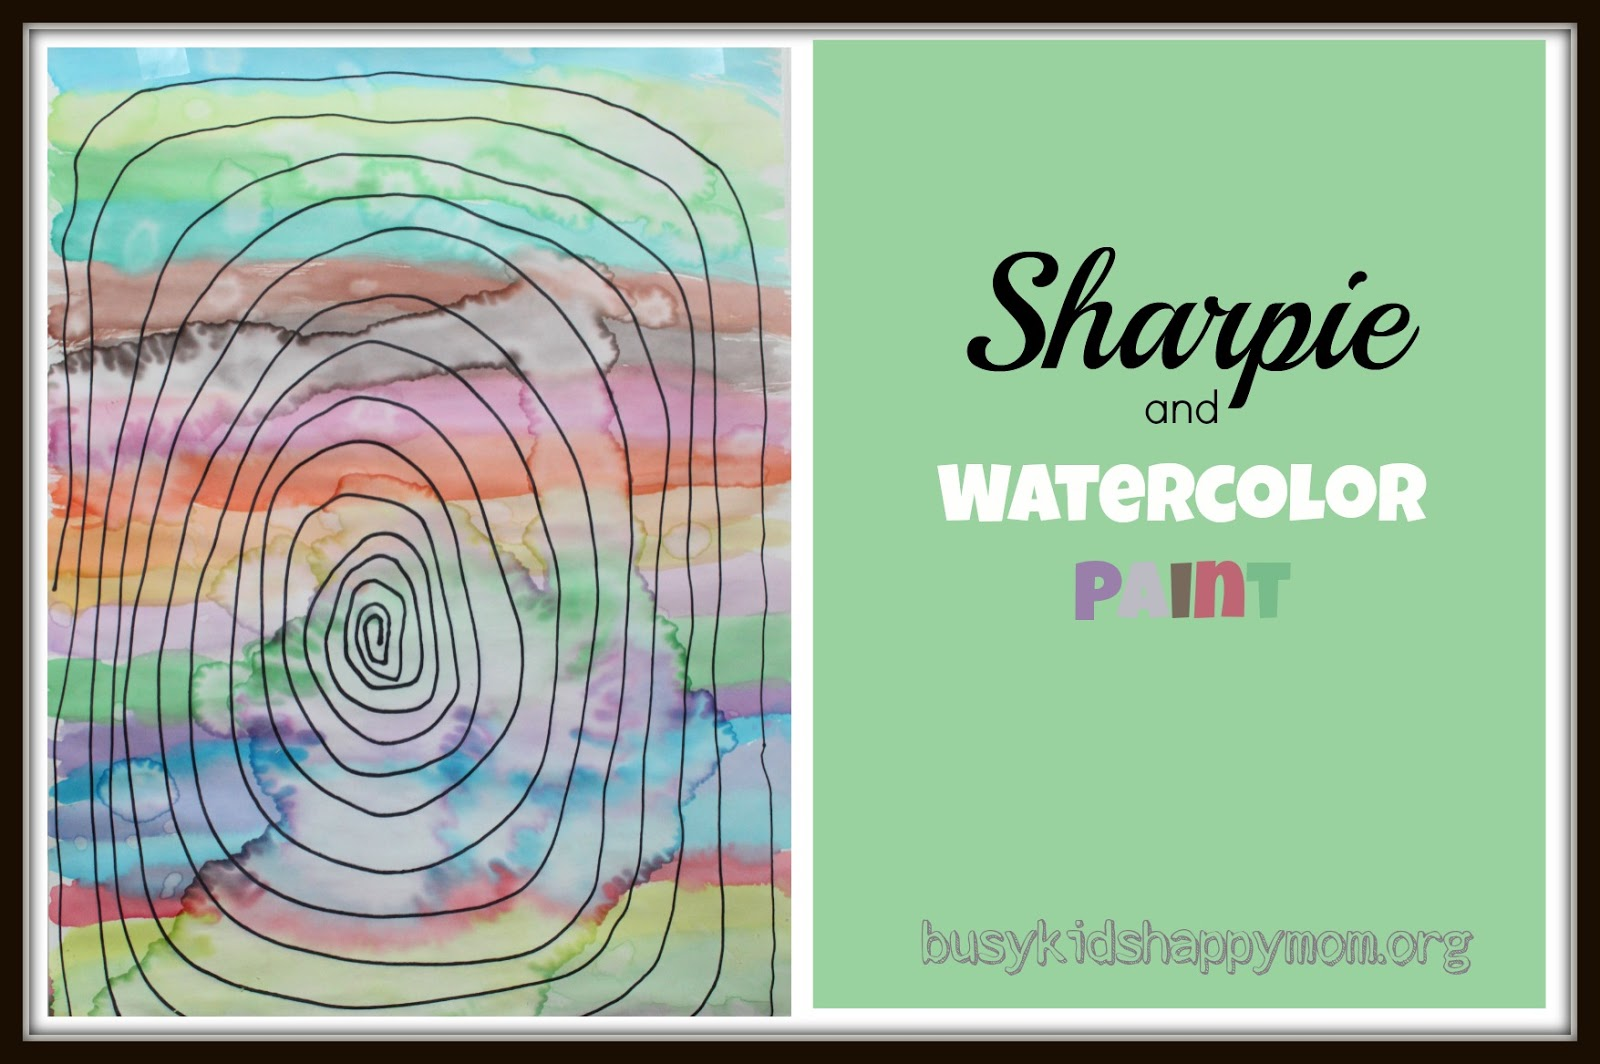 Craft ideas with sharpies - Sharpie And Watercolor Paint From Busy Kids Happy Mom